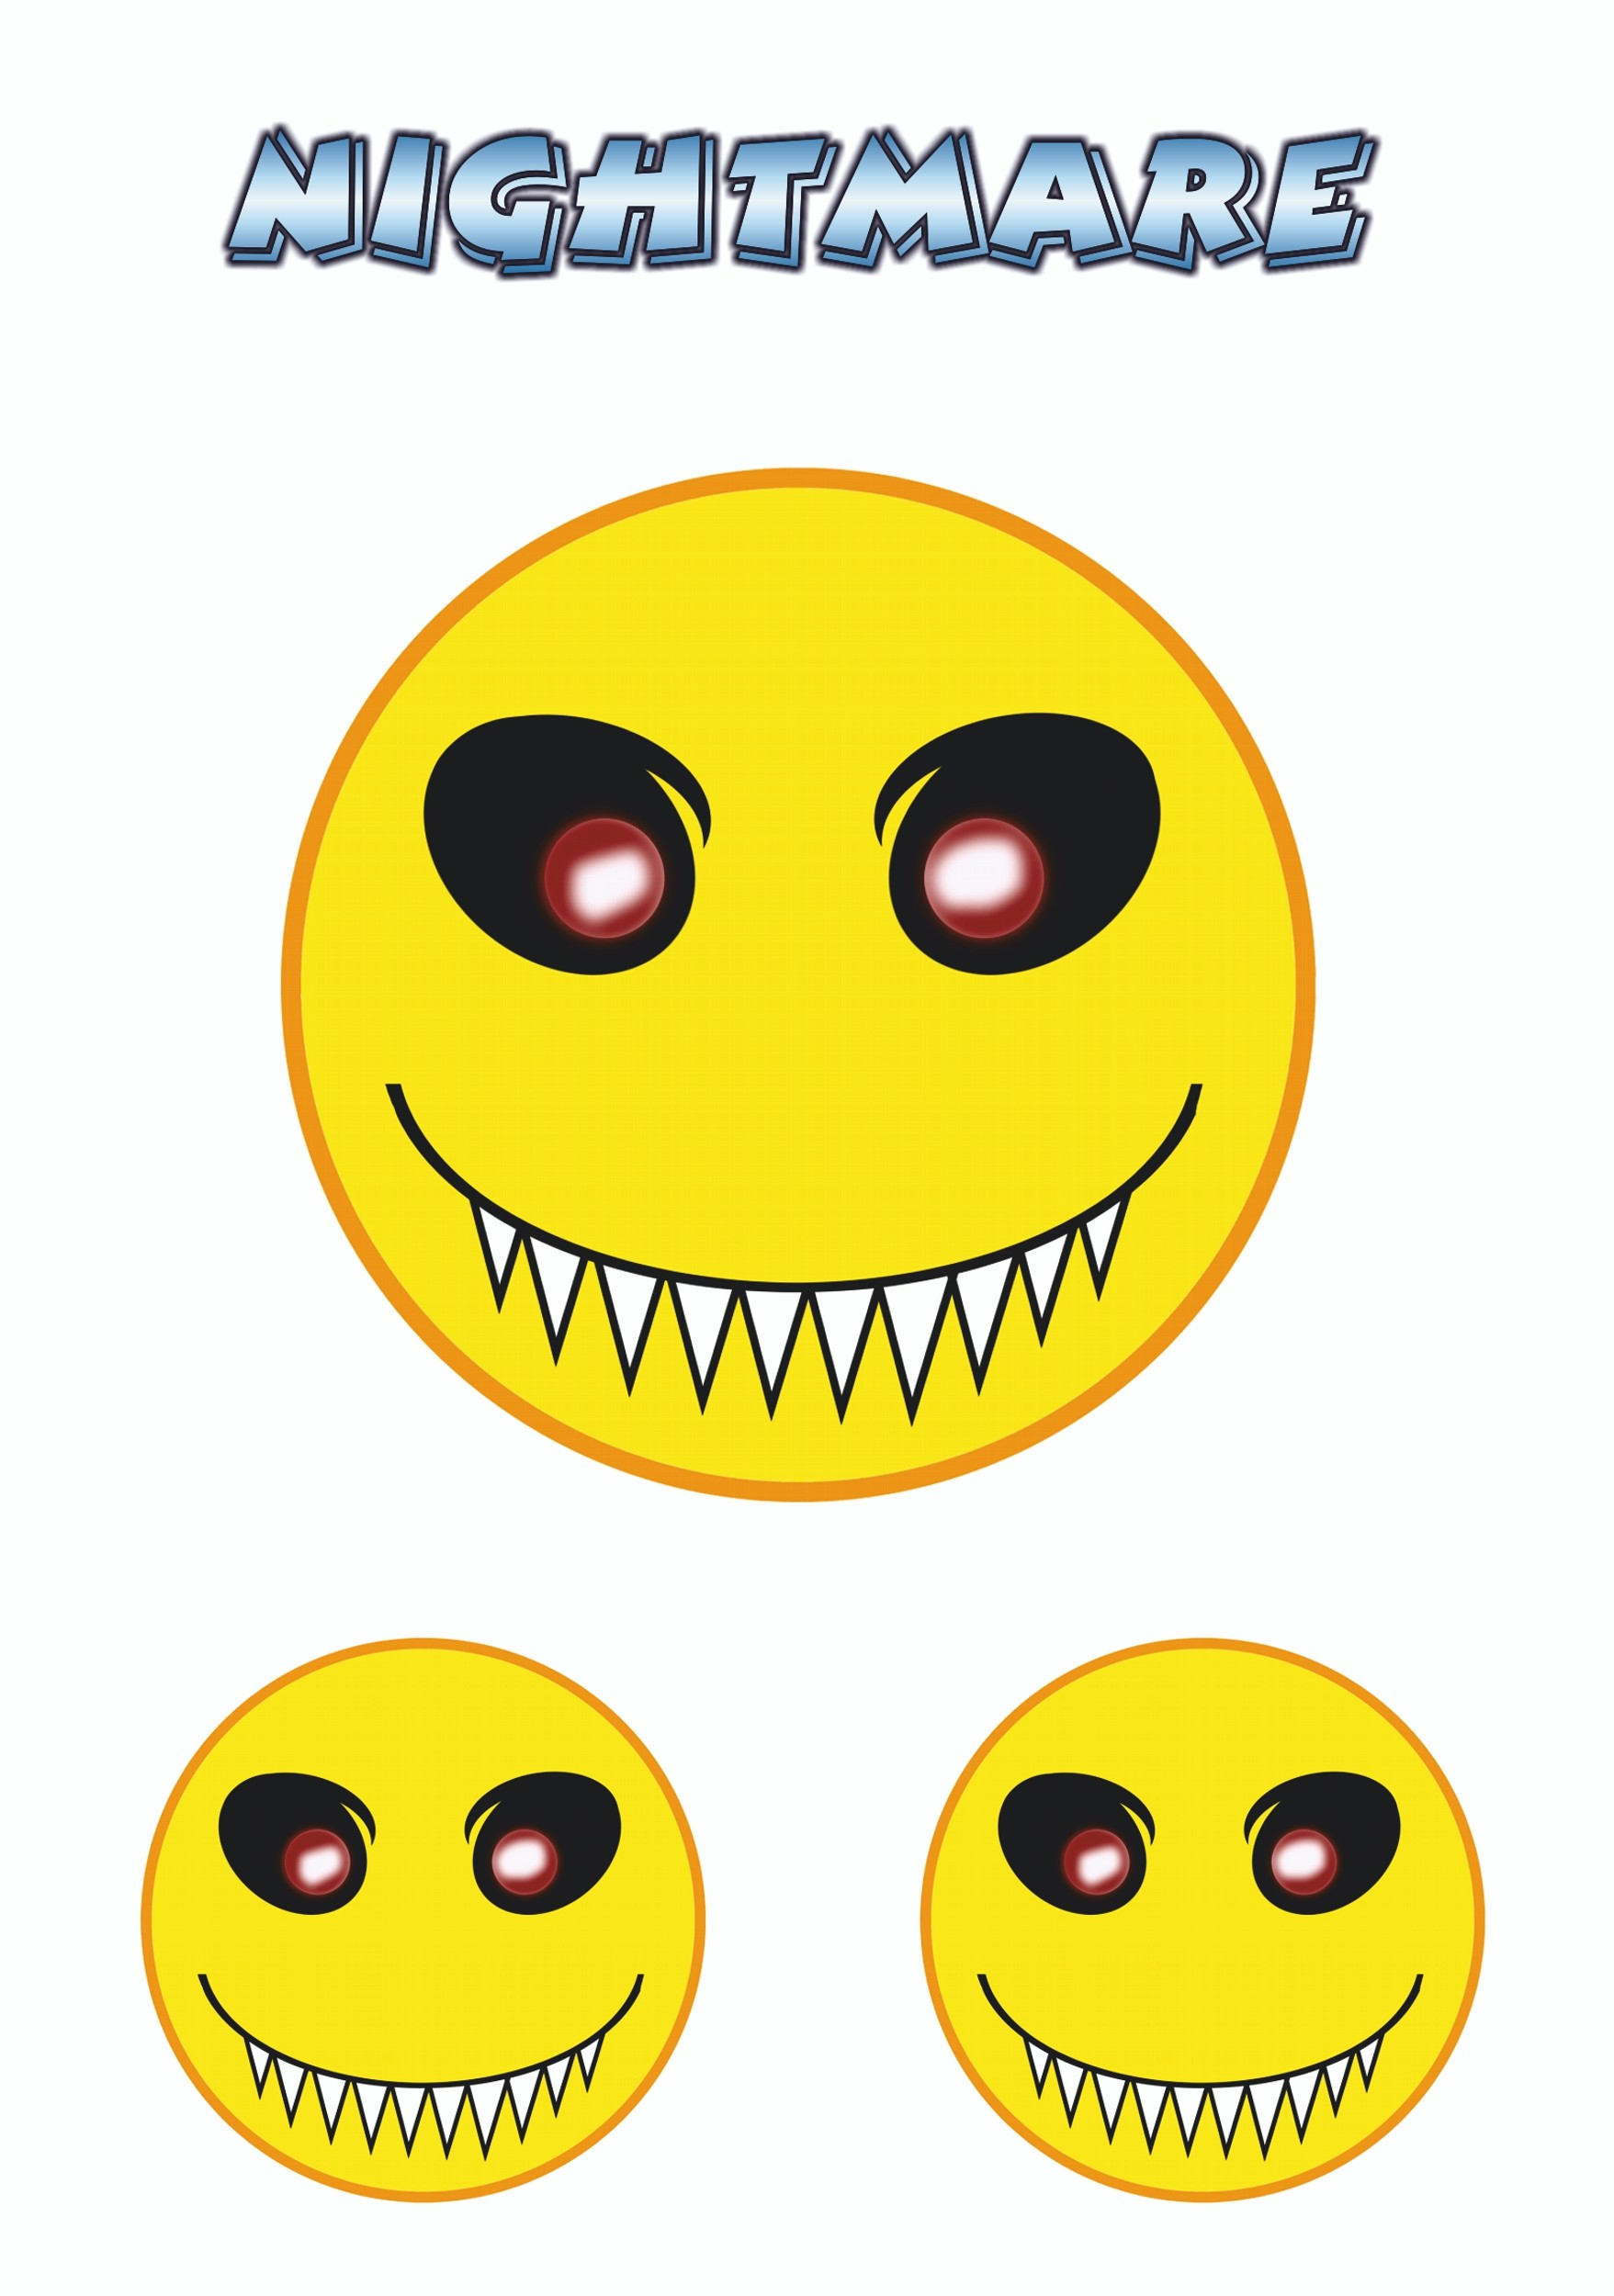 Sticker Smily Nightmare set of 3 150 x 105 mm